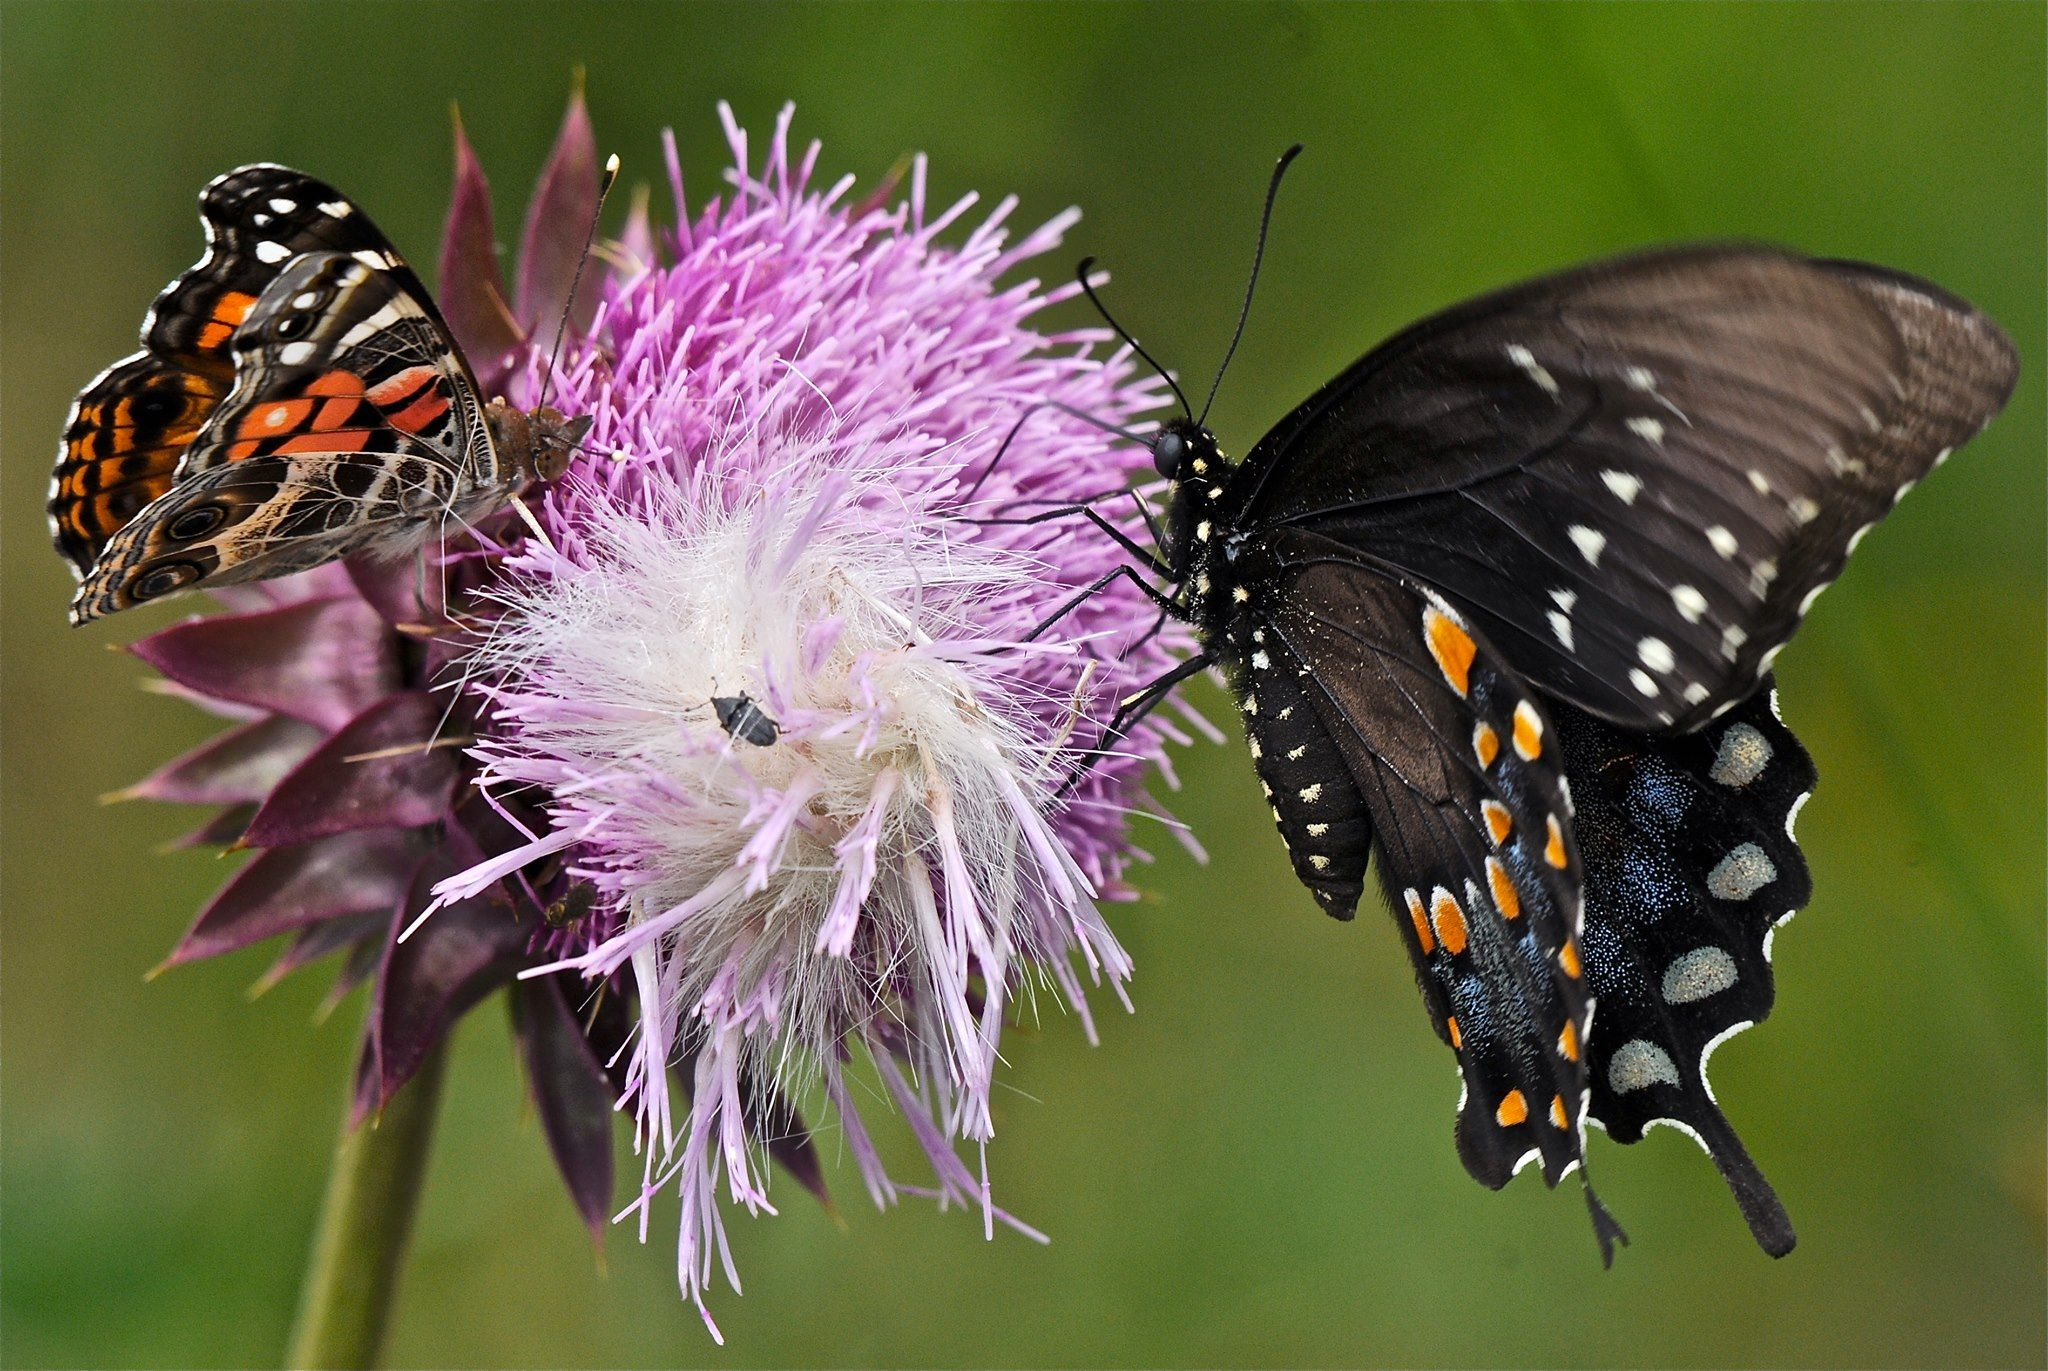 NOT MANY BUTTERFLIES ~ I was looking at some empty milkweed pods when it occurred to me that I have seen almost no butterflies this summer. Fears about pesticides are coming true. This photo is from a couple of years ago. I was cutting musk thistle plants and came across this busy one. Bigger is better. (6/4/13 Peace Valley, Missouri)